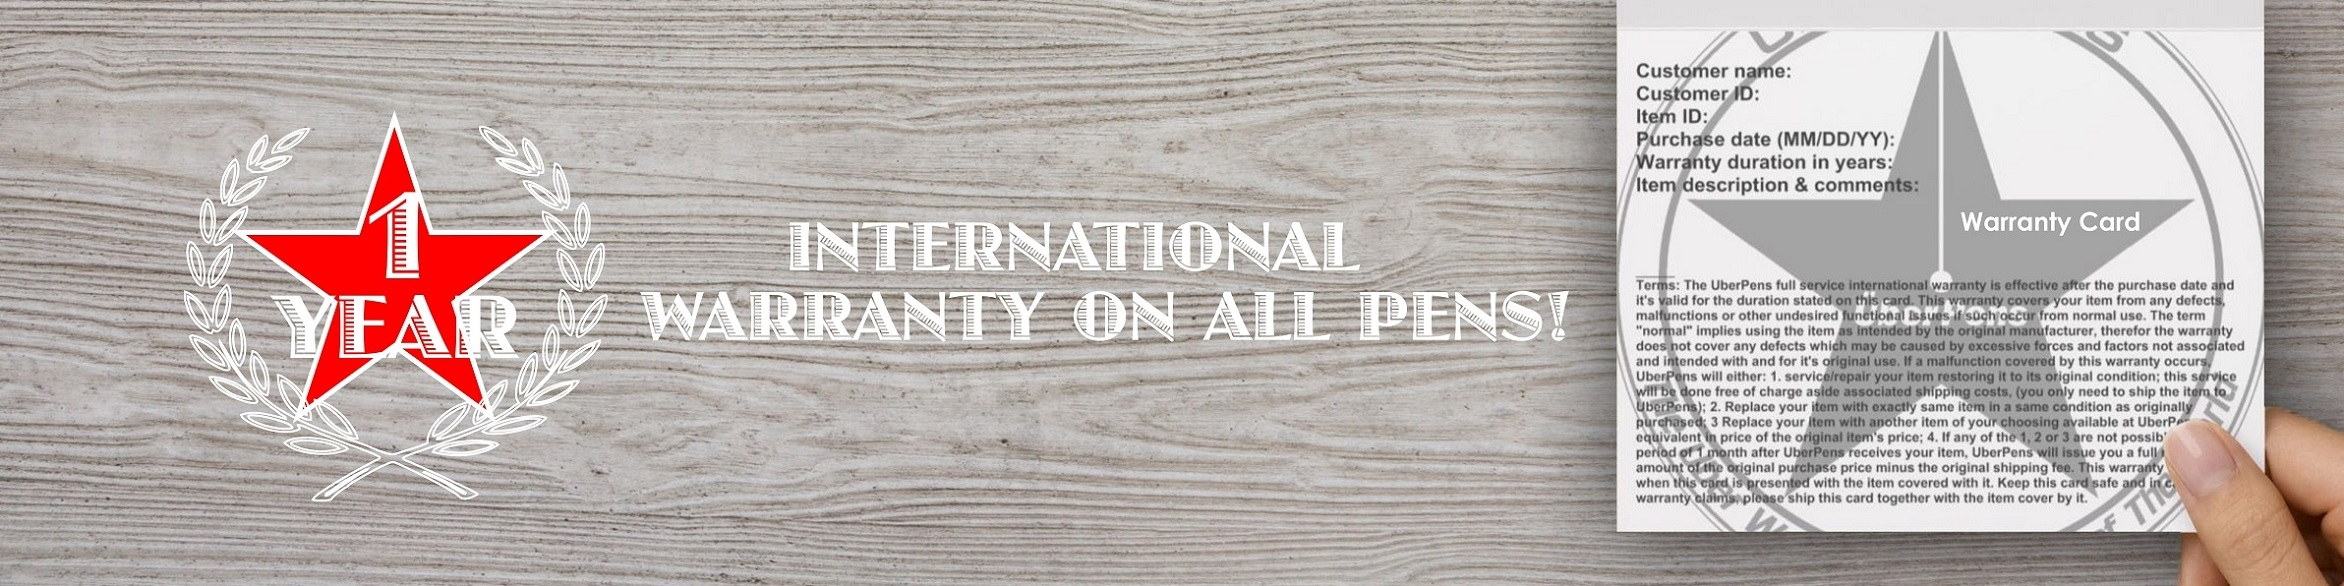 1 year international warranty on all pens